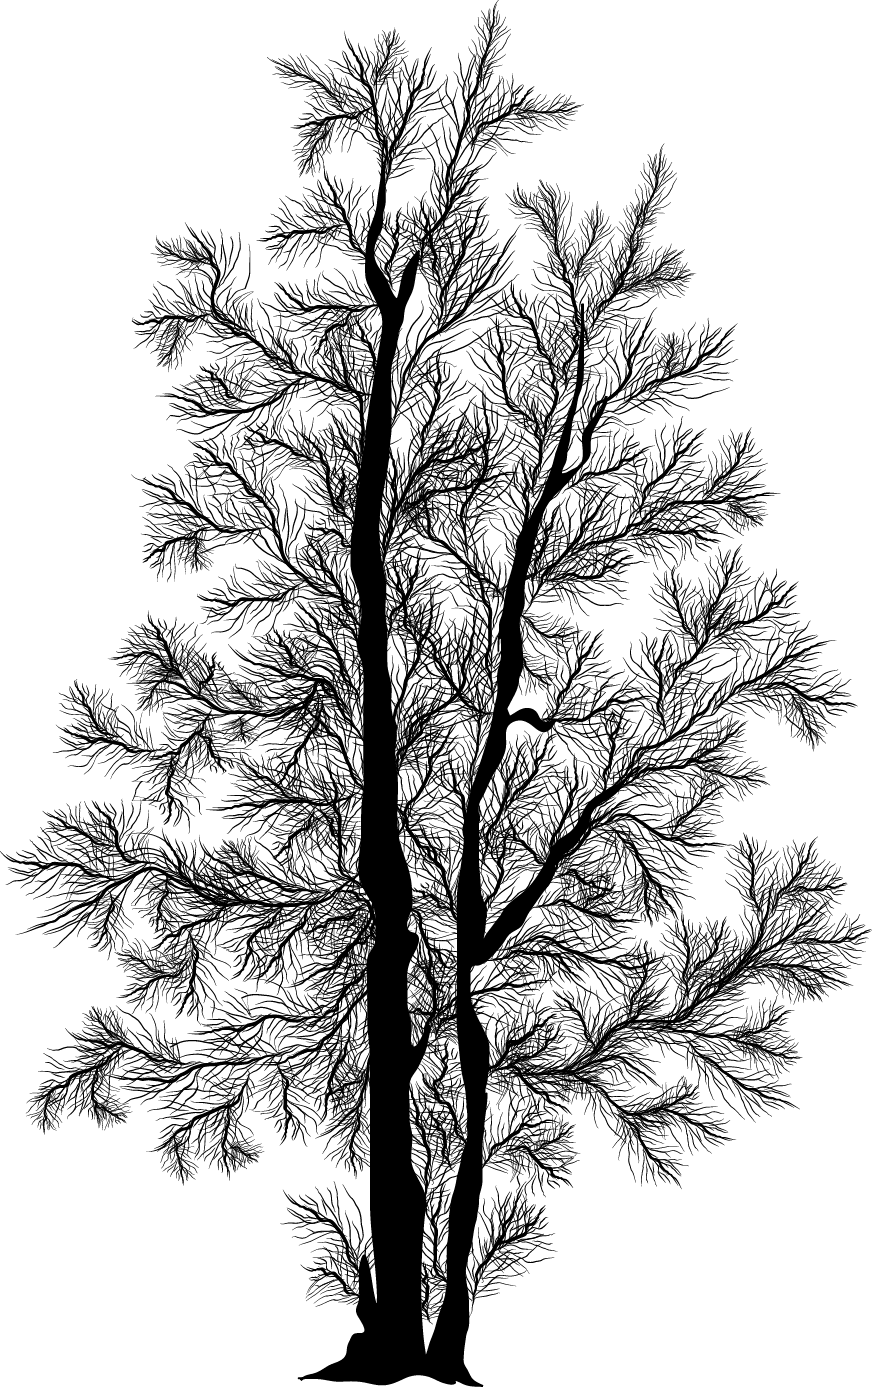 Birch tree in winter silhouette png. Painting clipart illustration file